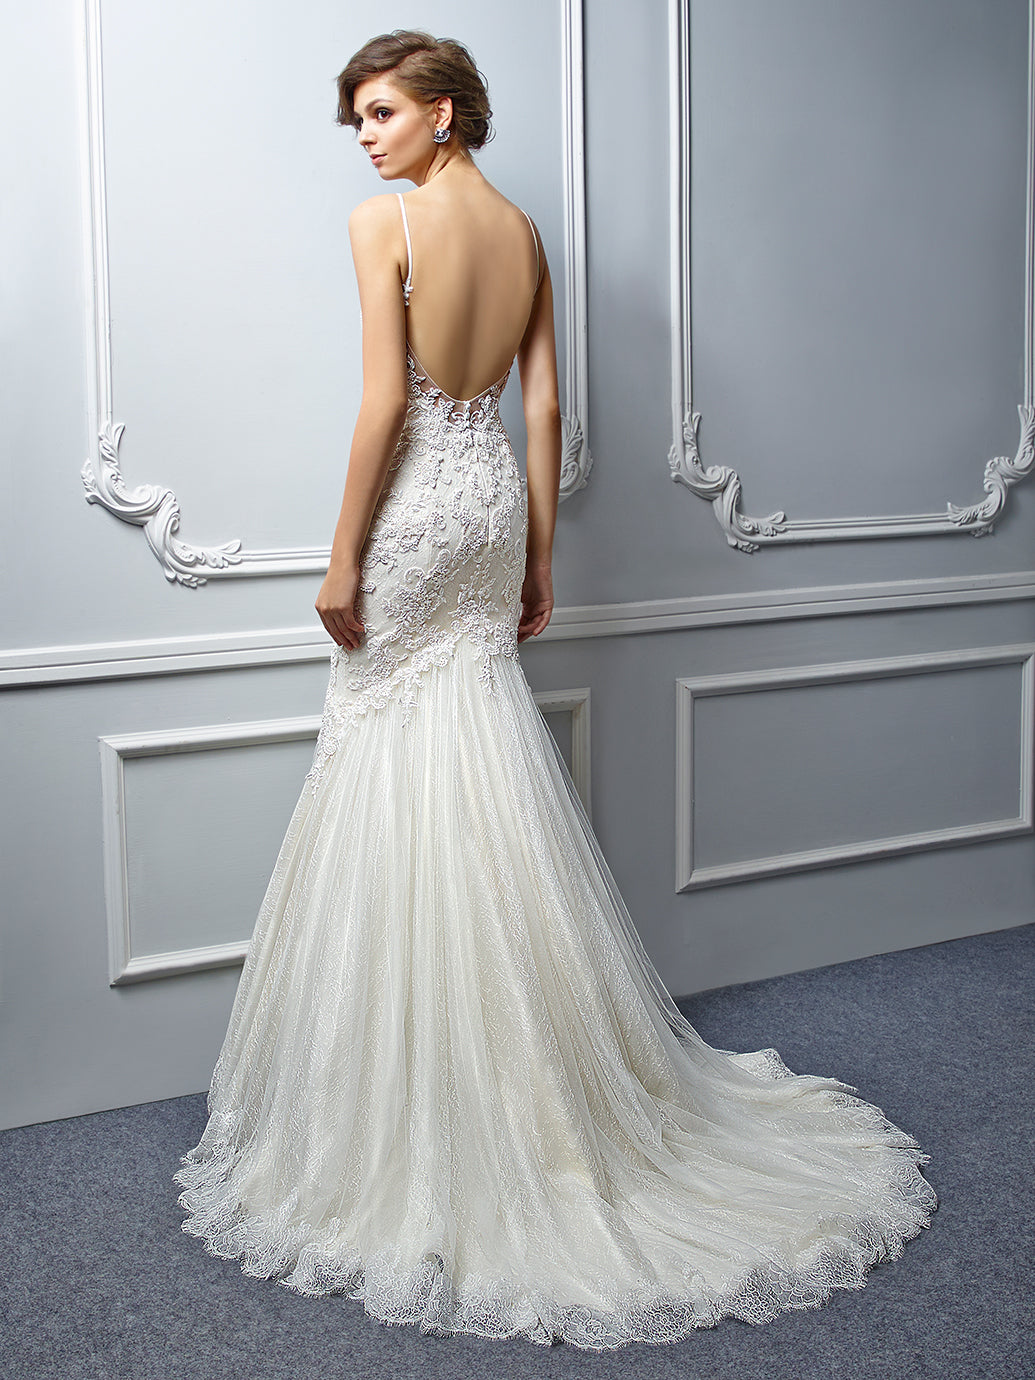 Stevie - Sample Gown, Online Sample Sale, Beautiful by Enzoani - Sample Gown - Eternal Bridal